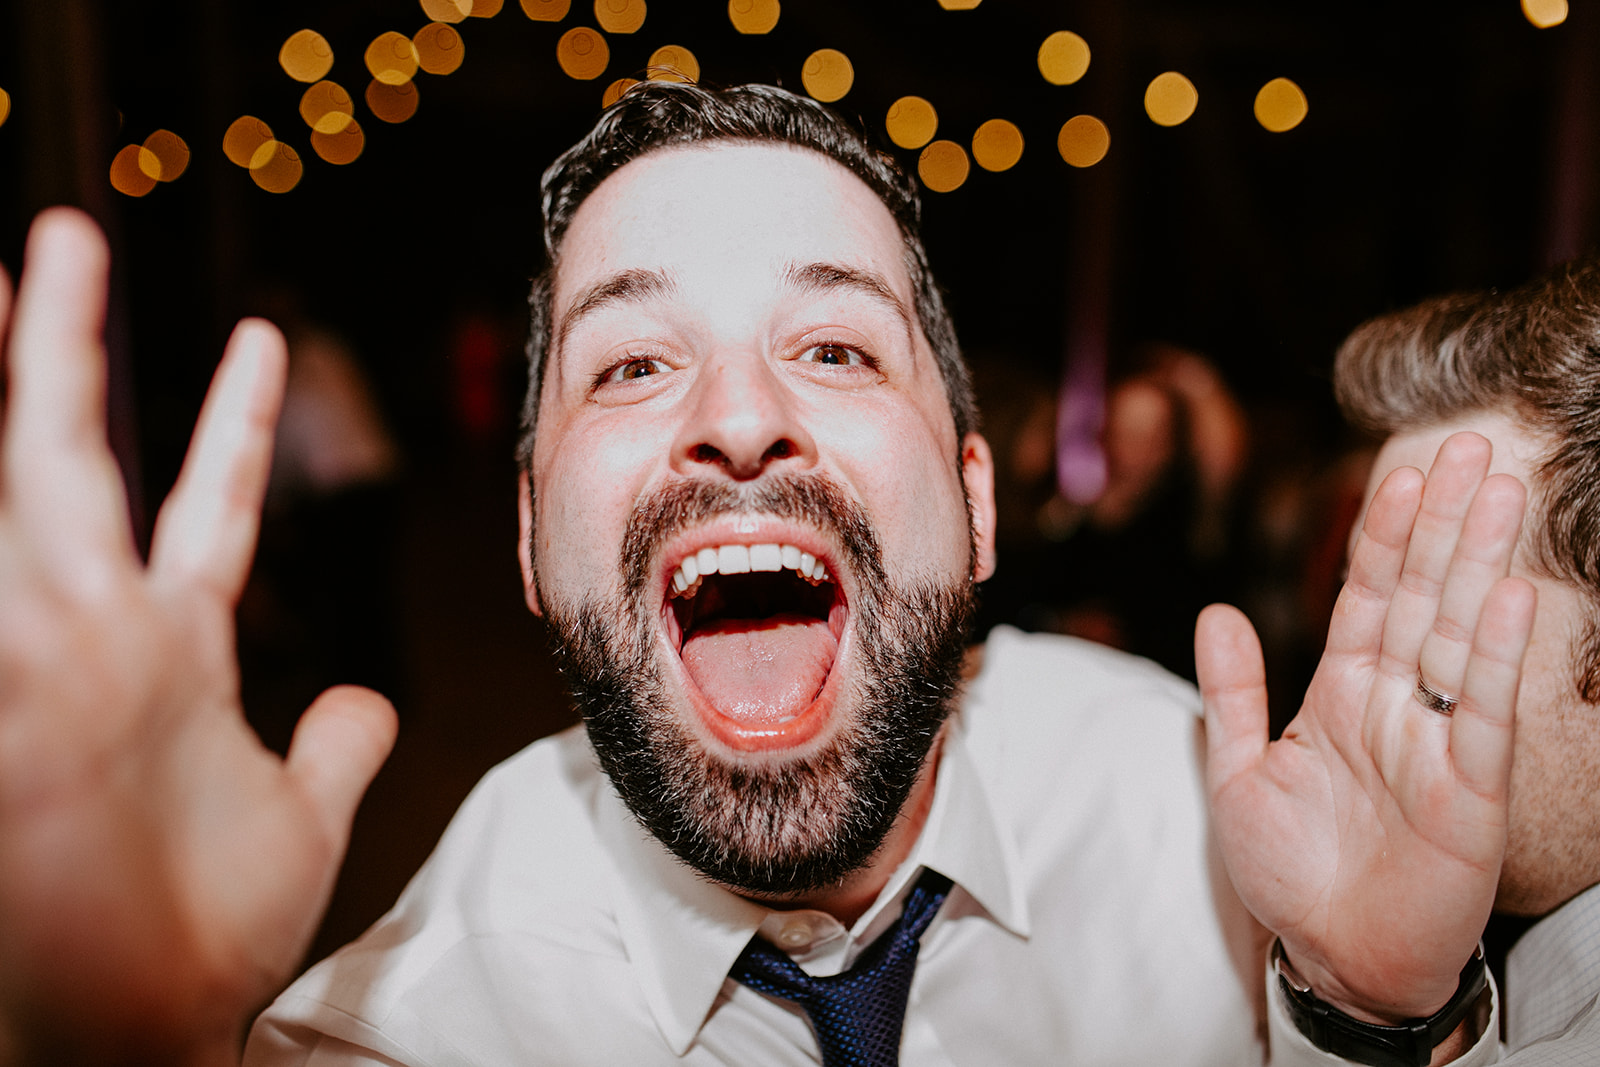 Wedding DJ Services in Hagerstown PA